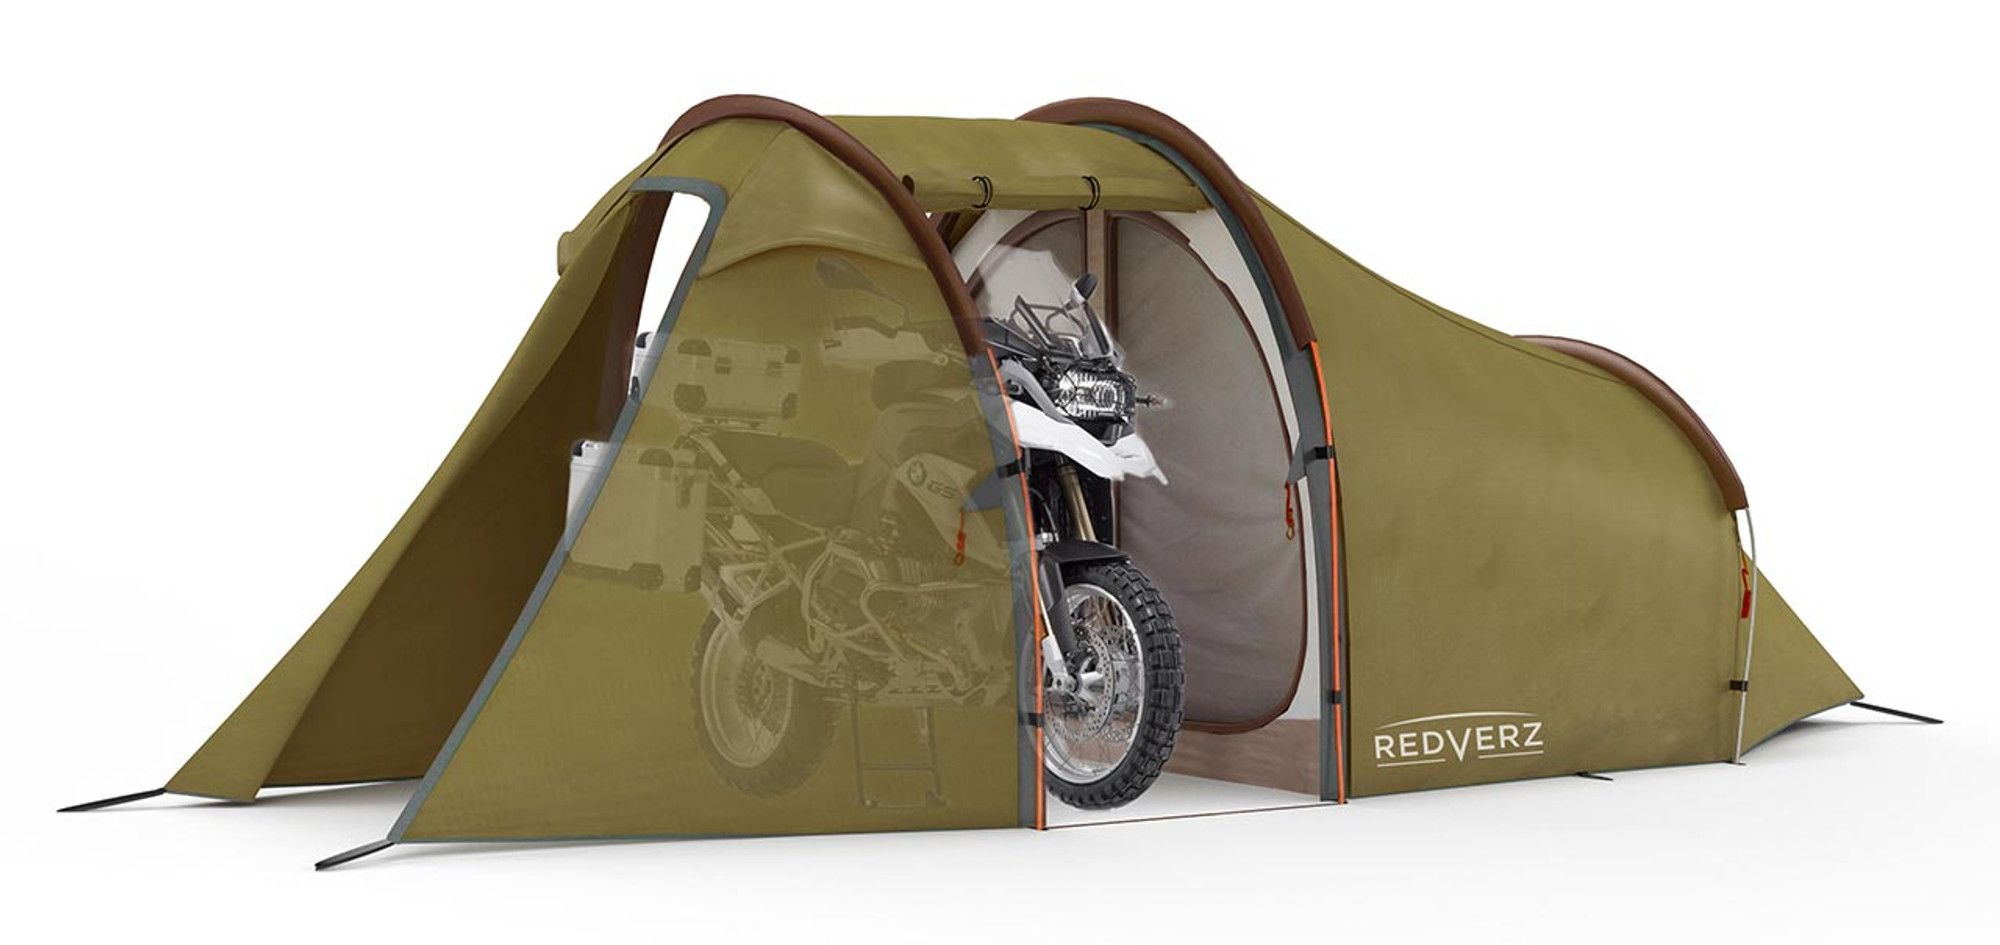 ... Redverz Motorcycle Tent - Atacama Expedition Tent in Green. Main garage  doors open 36bf2ad1bd6eb